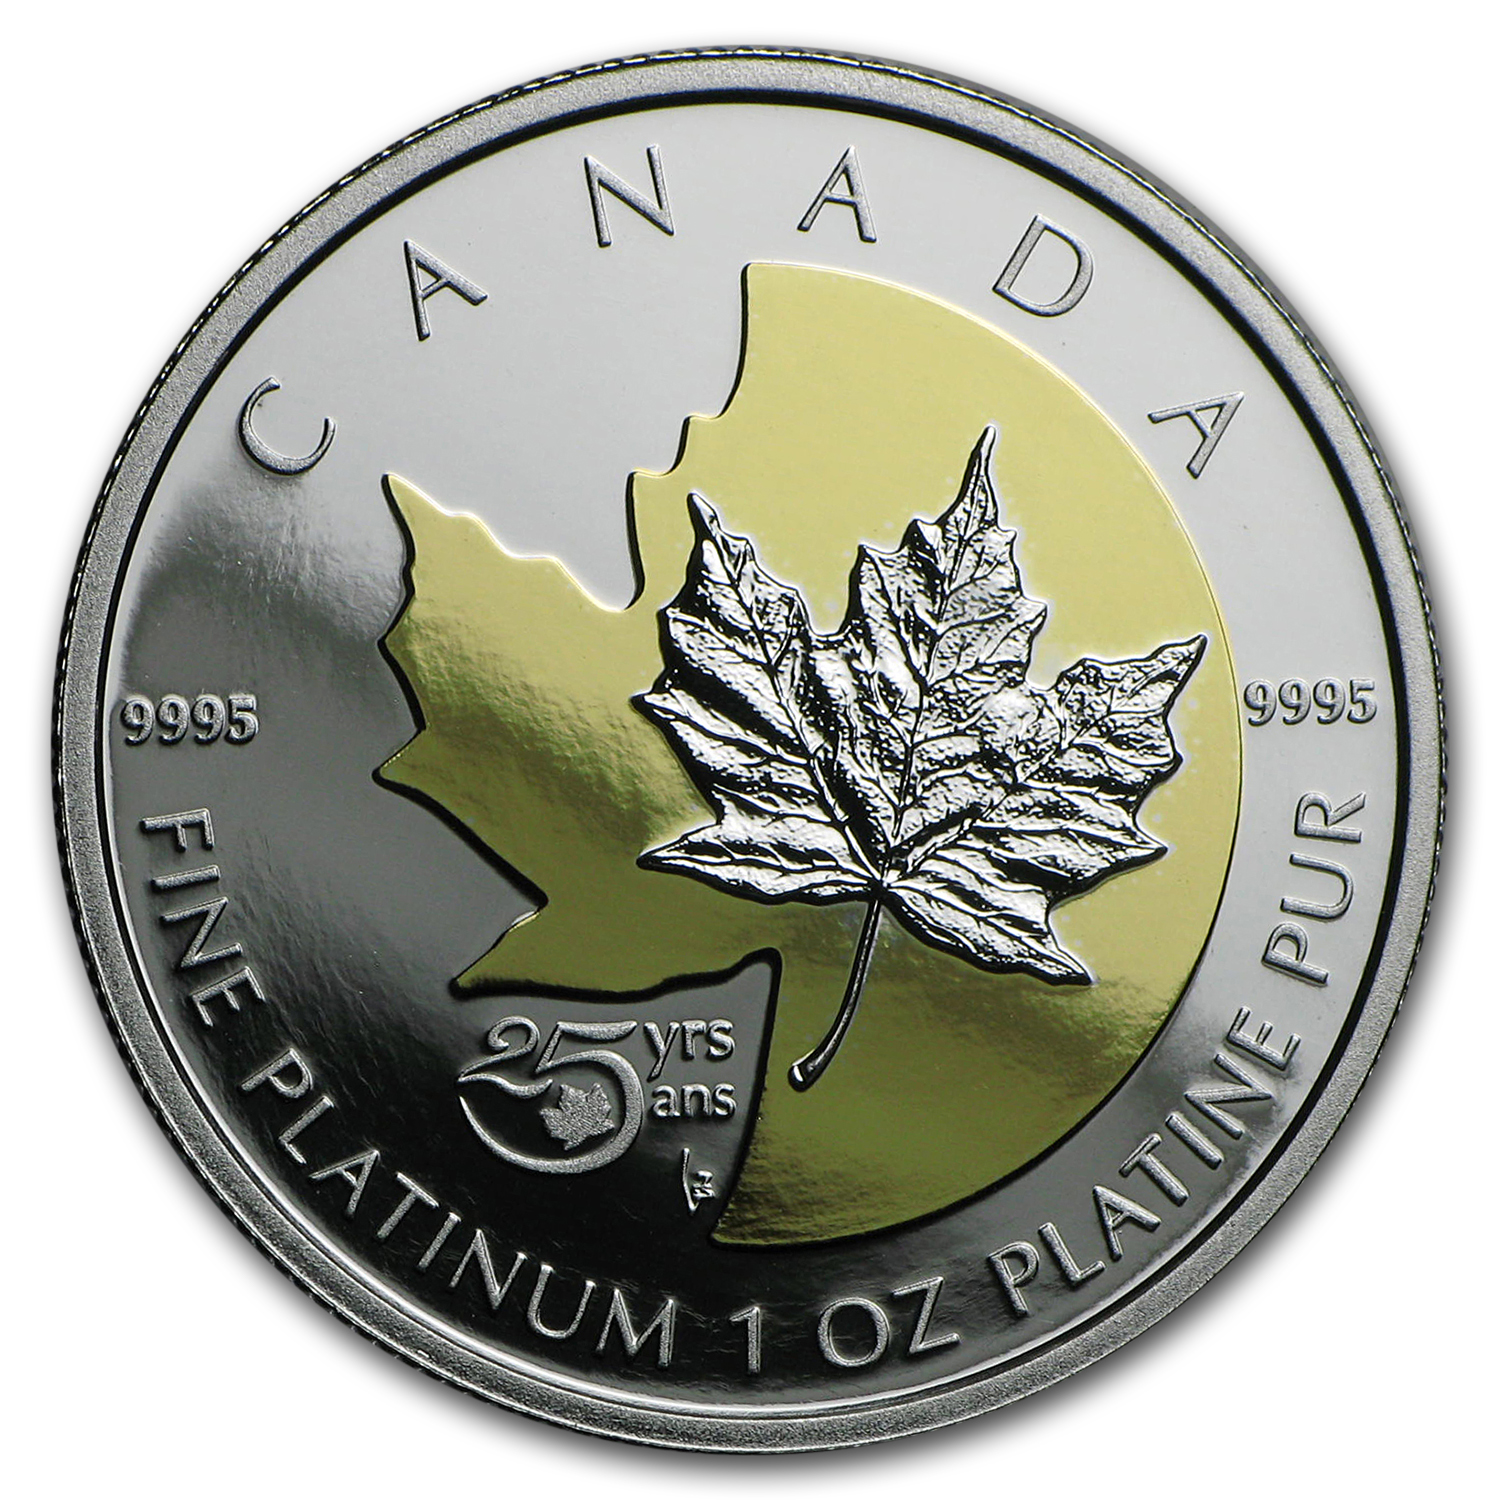 2013 Canada 1 oz Proof Platinum $300 25th Anniv of the Maple